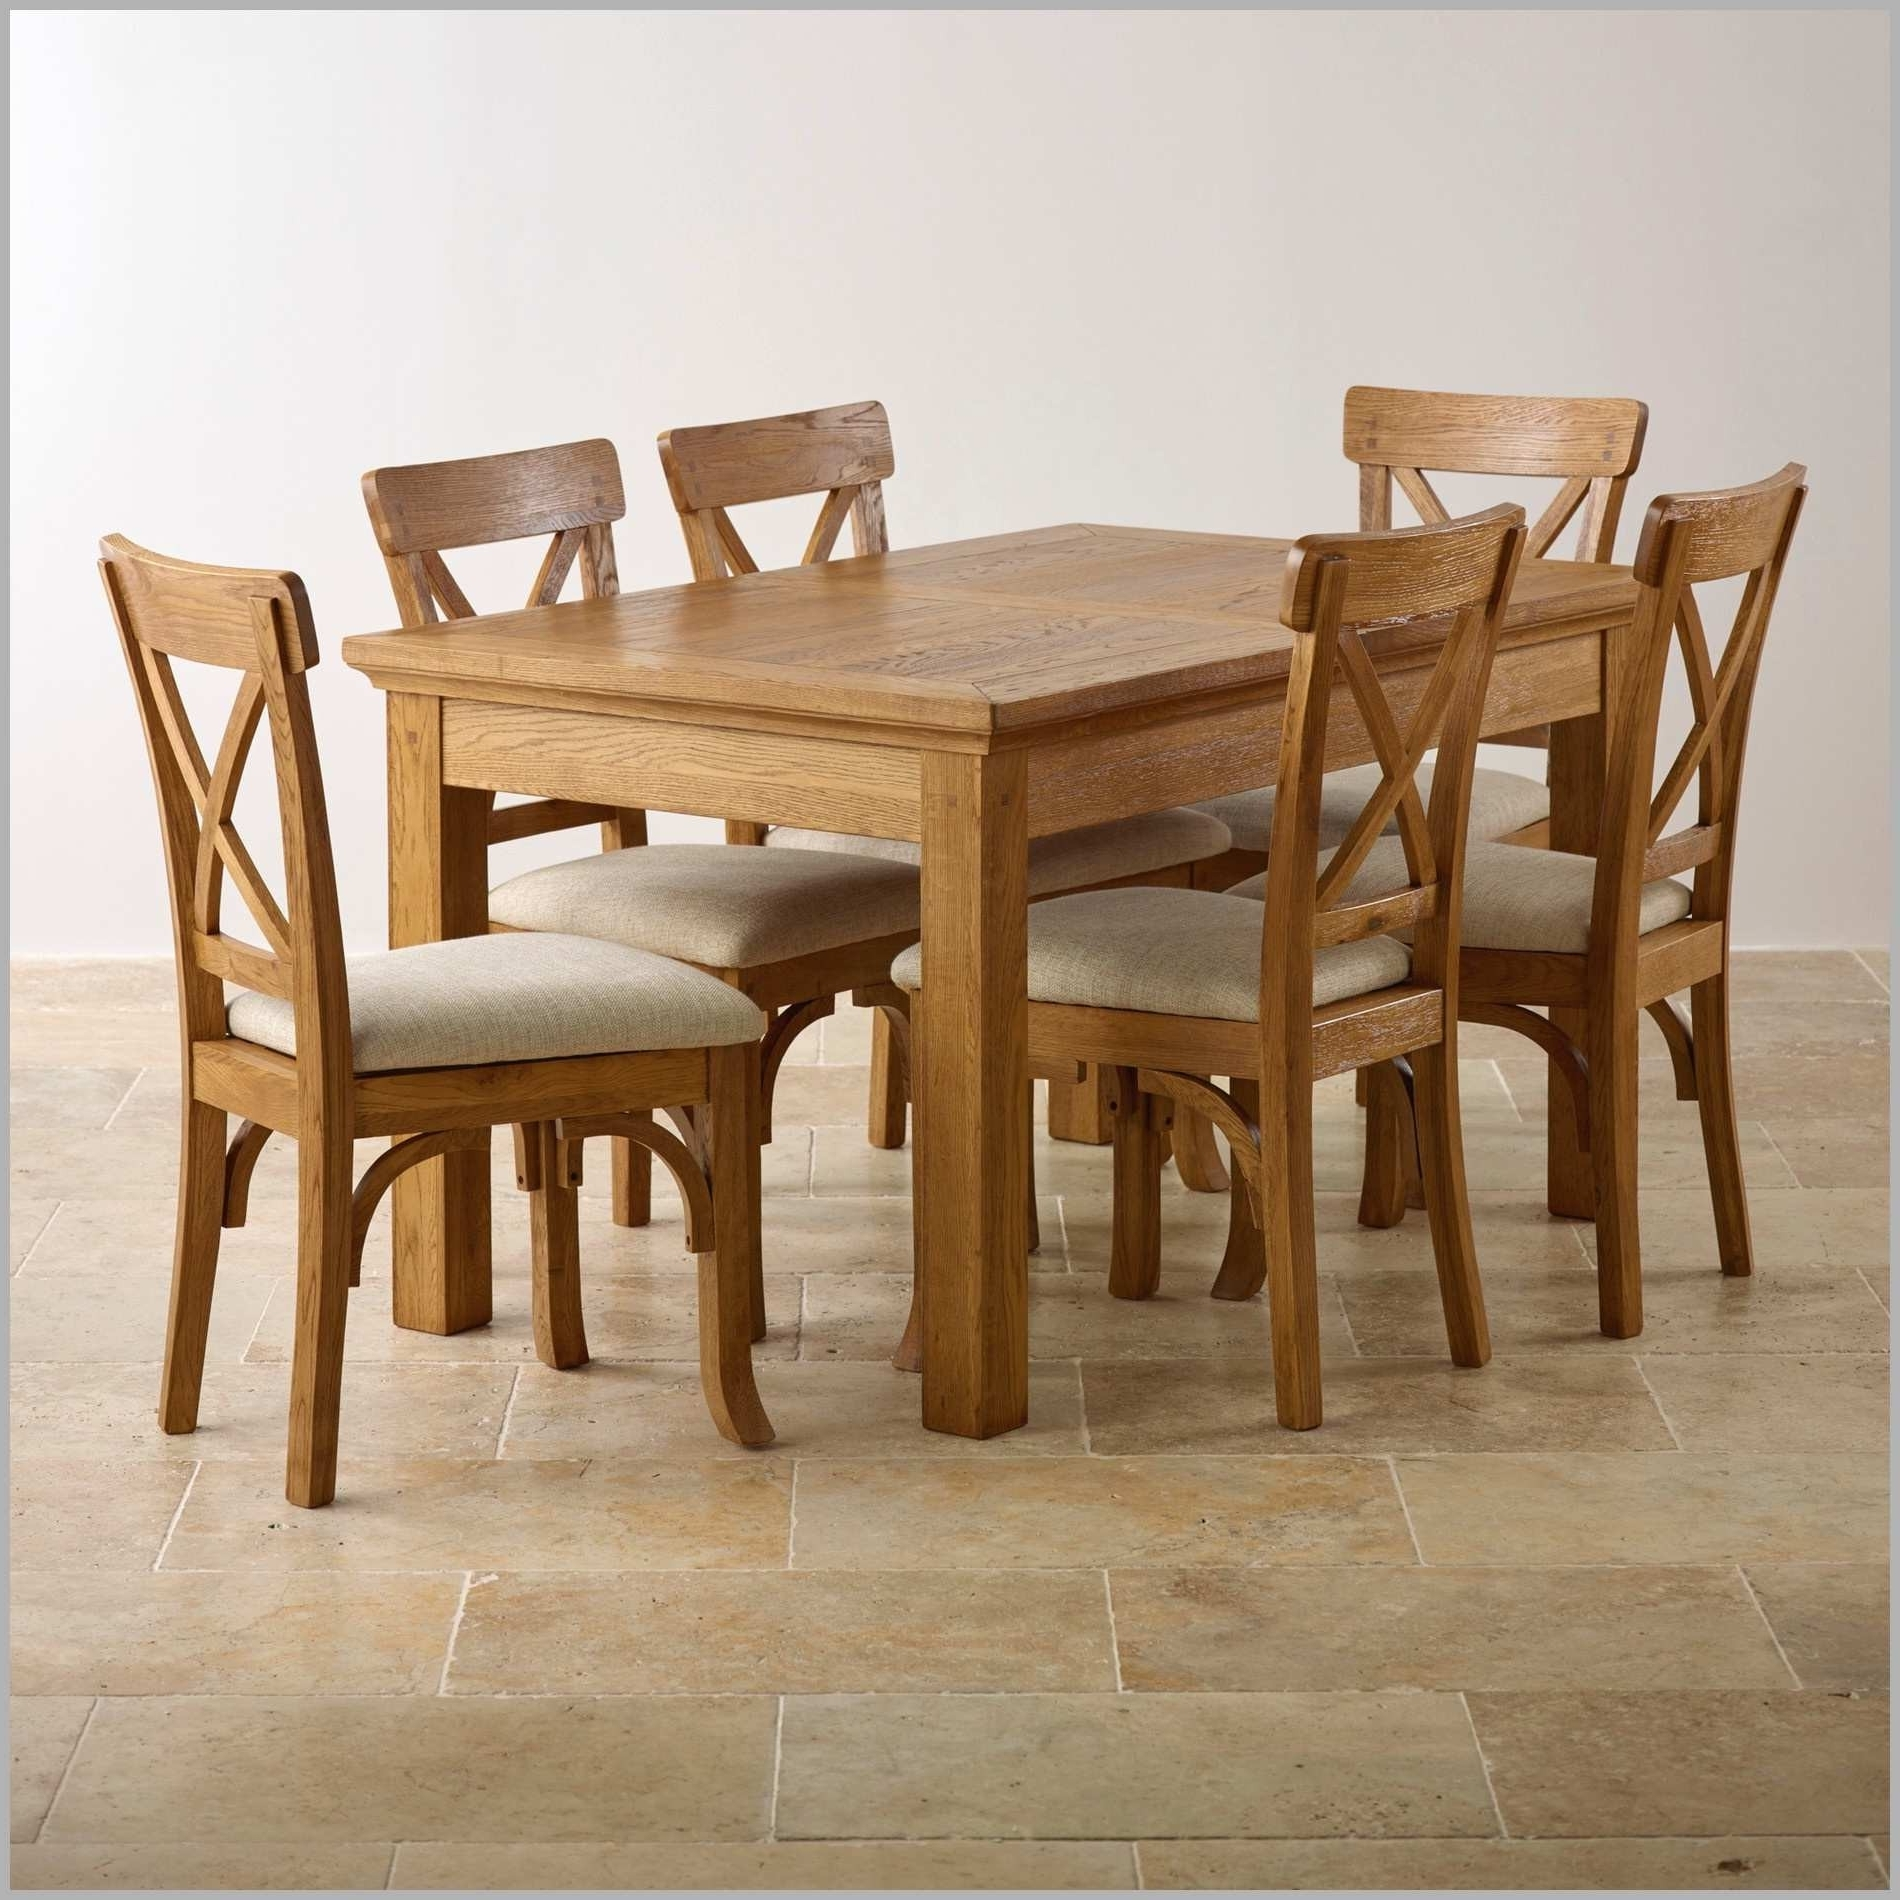 The 24 Elegant Solid Oak Round Dining Table 6 Chairs Inside Popular 8 Seater Oak Dining Tables (View 24 of 25)